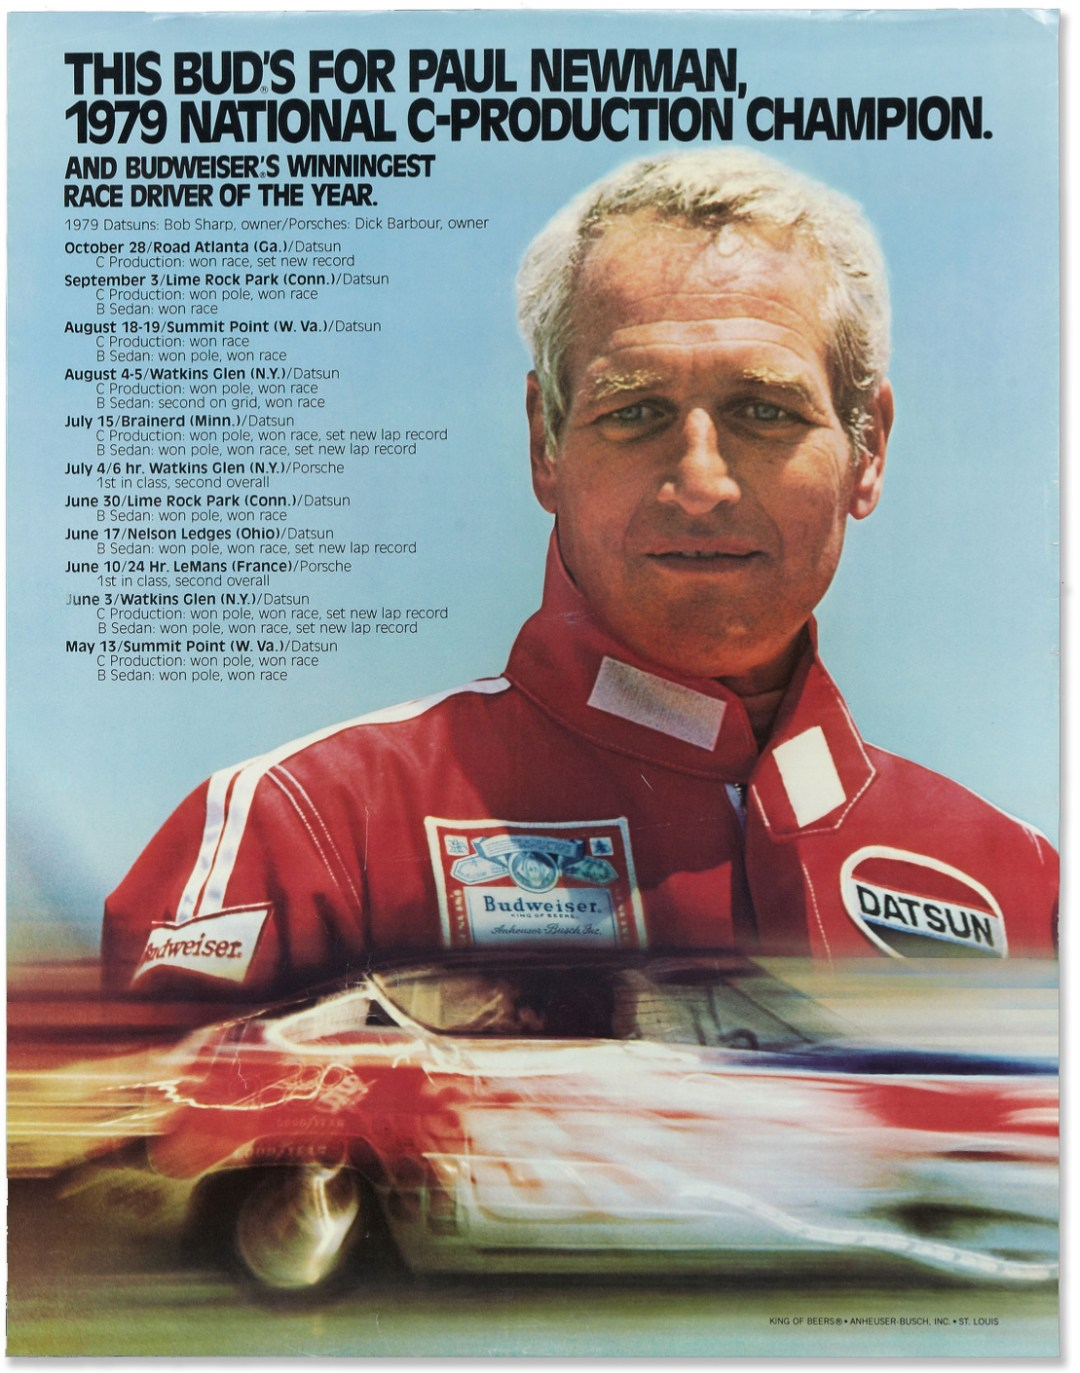 Paul Newman Budweiser Racing Poster